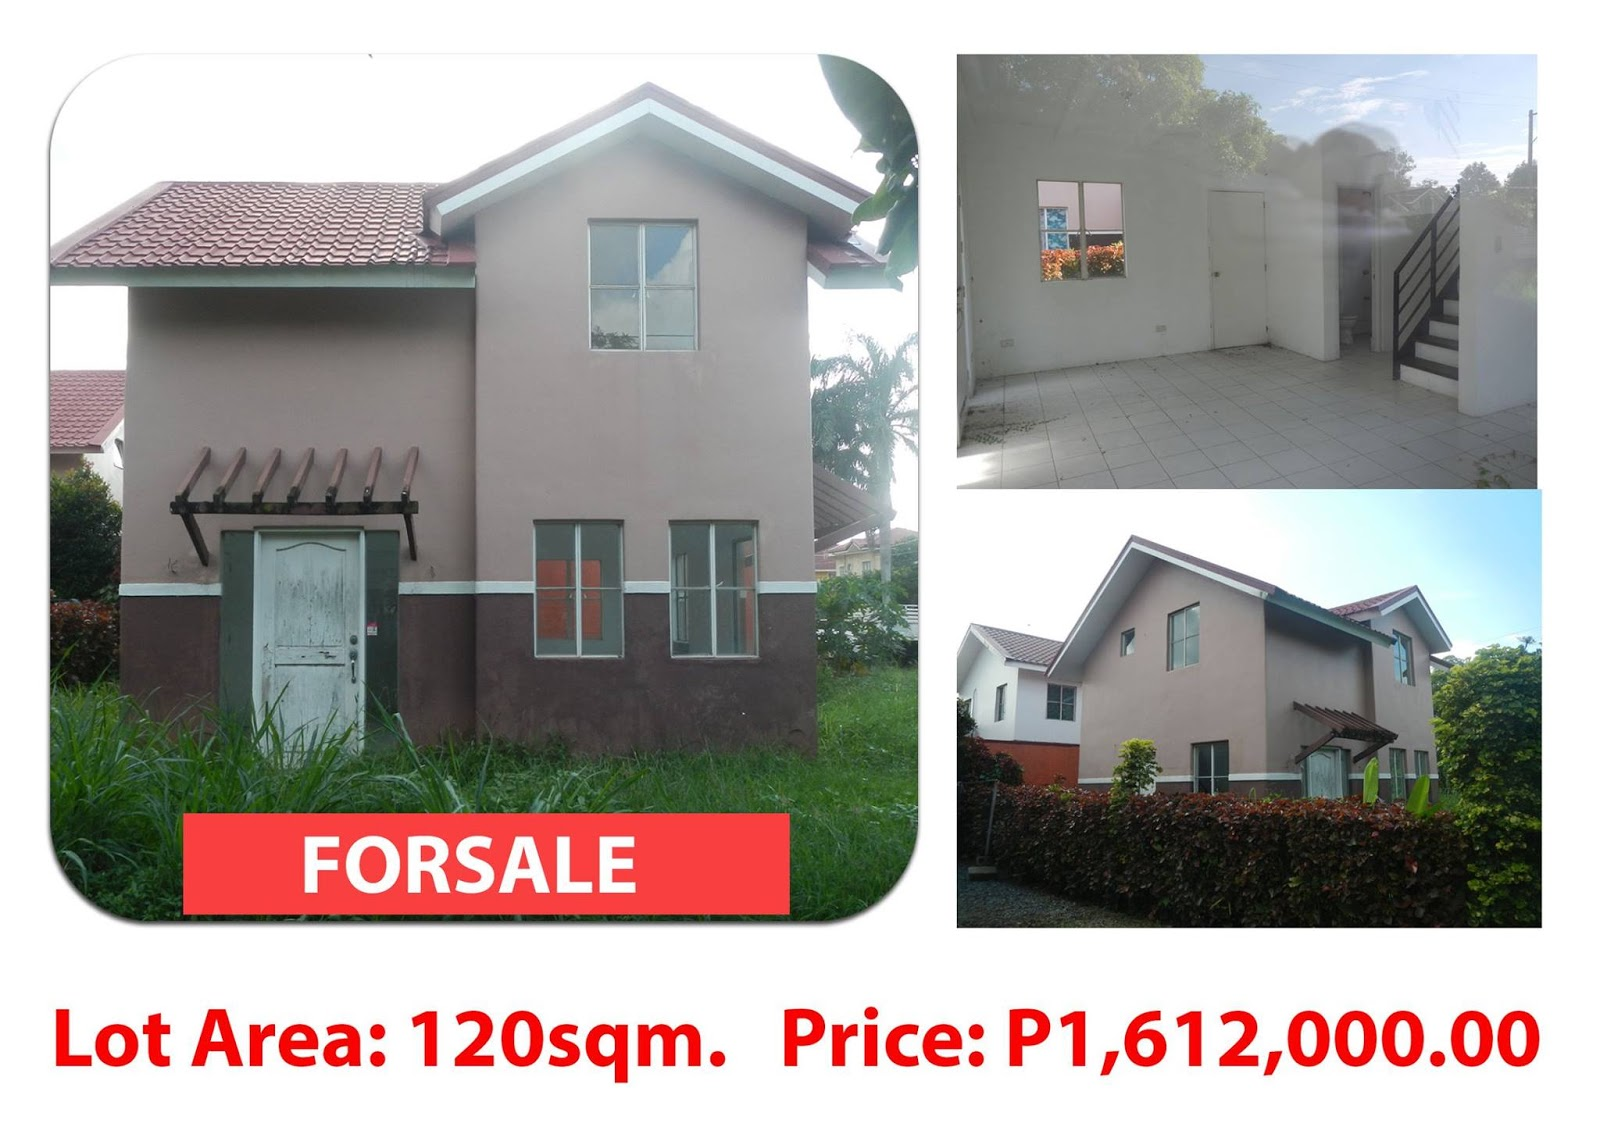 House And Lot Foreclosed Properties For Sale In The